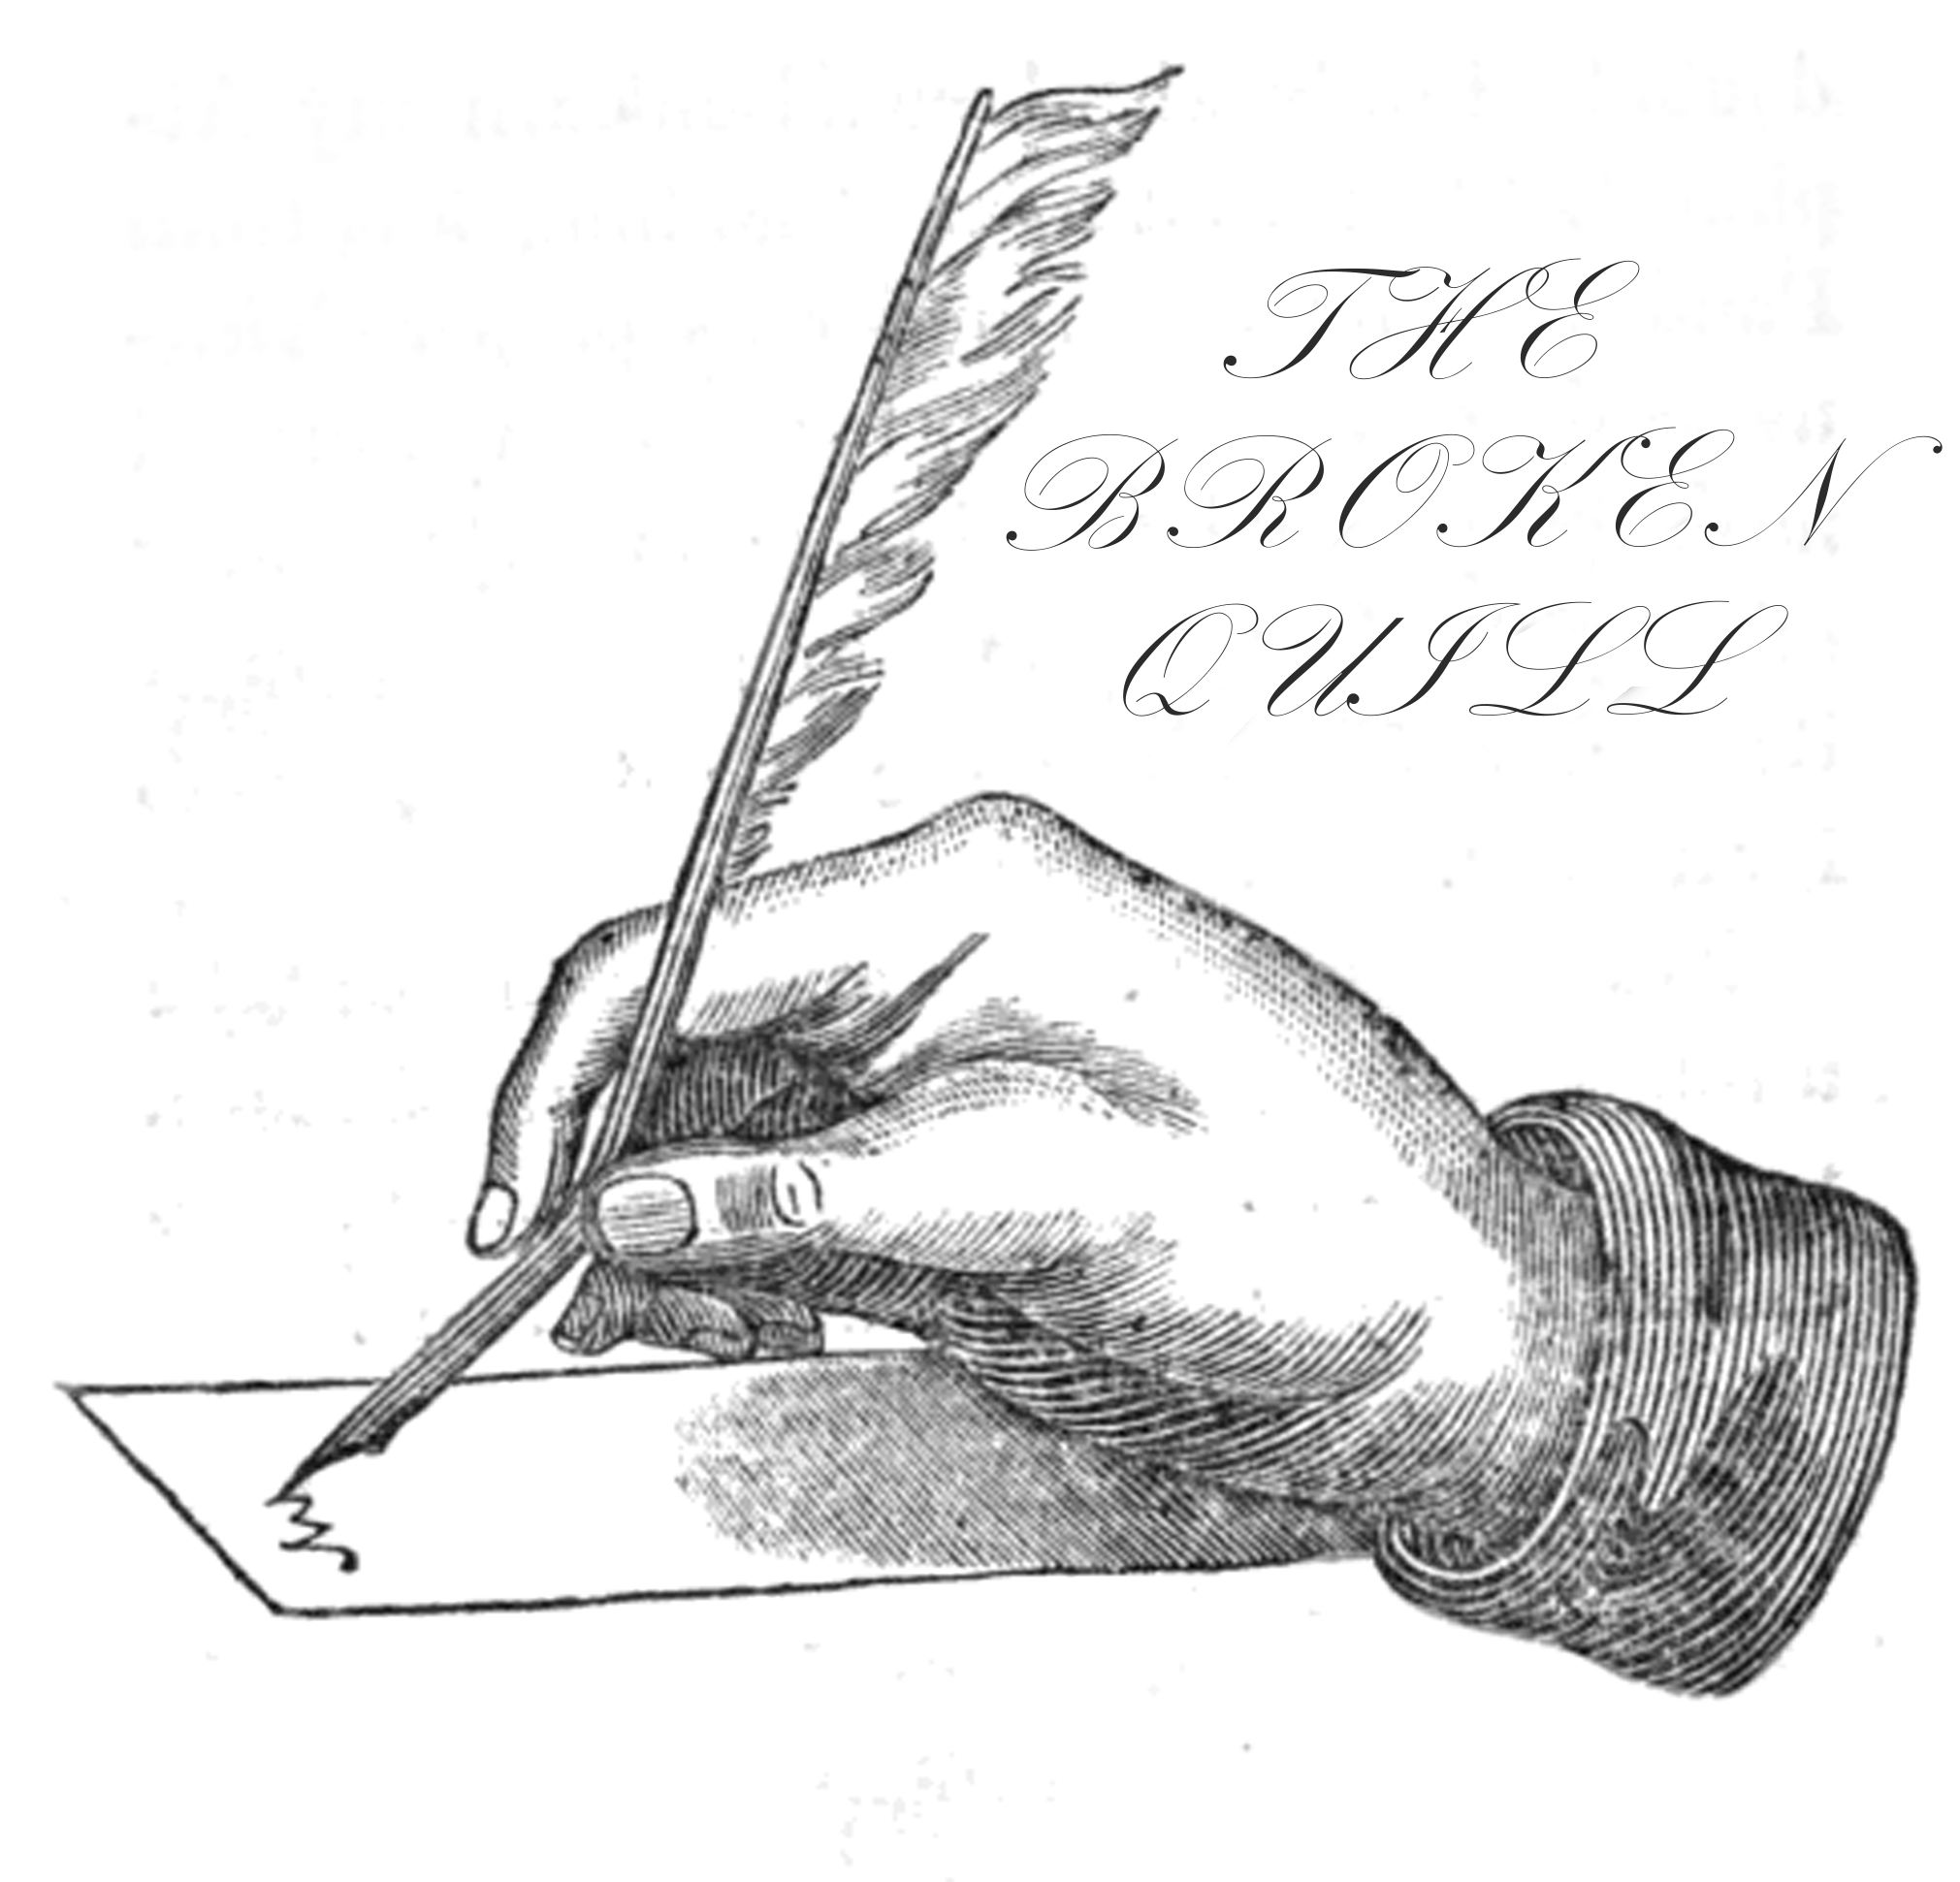 The Broken Quill